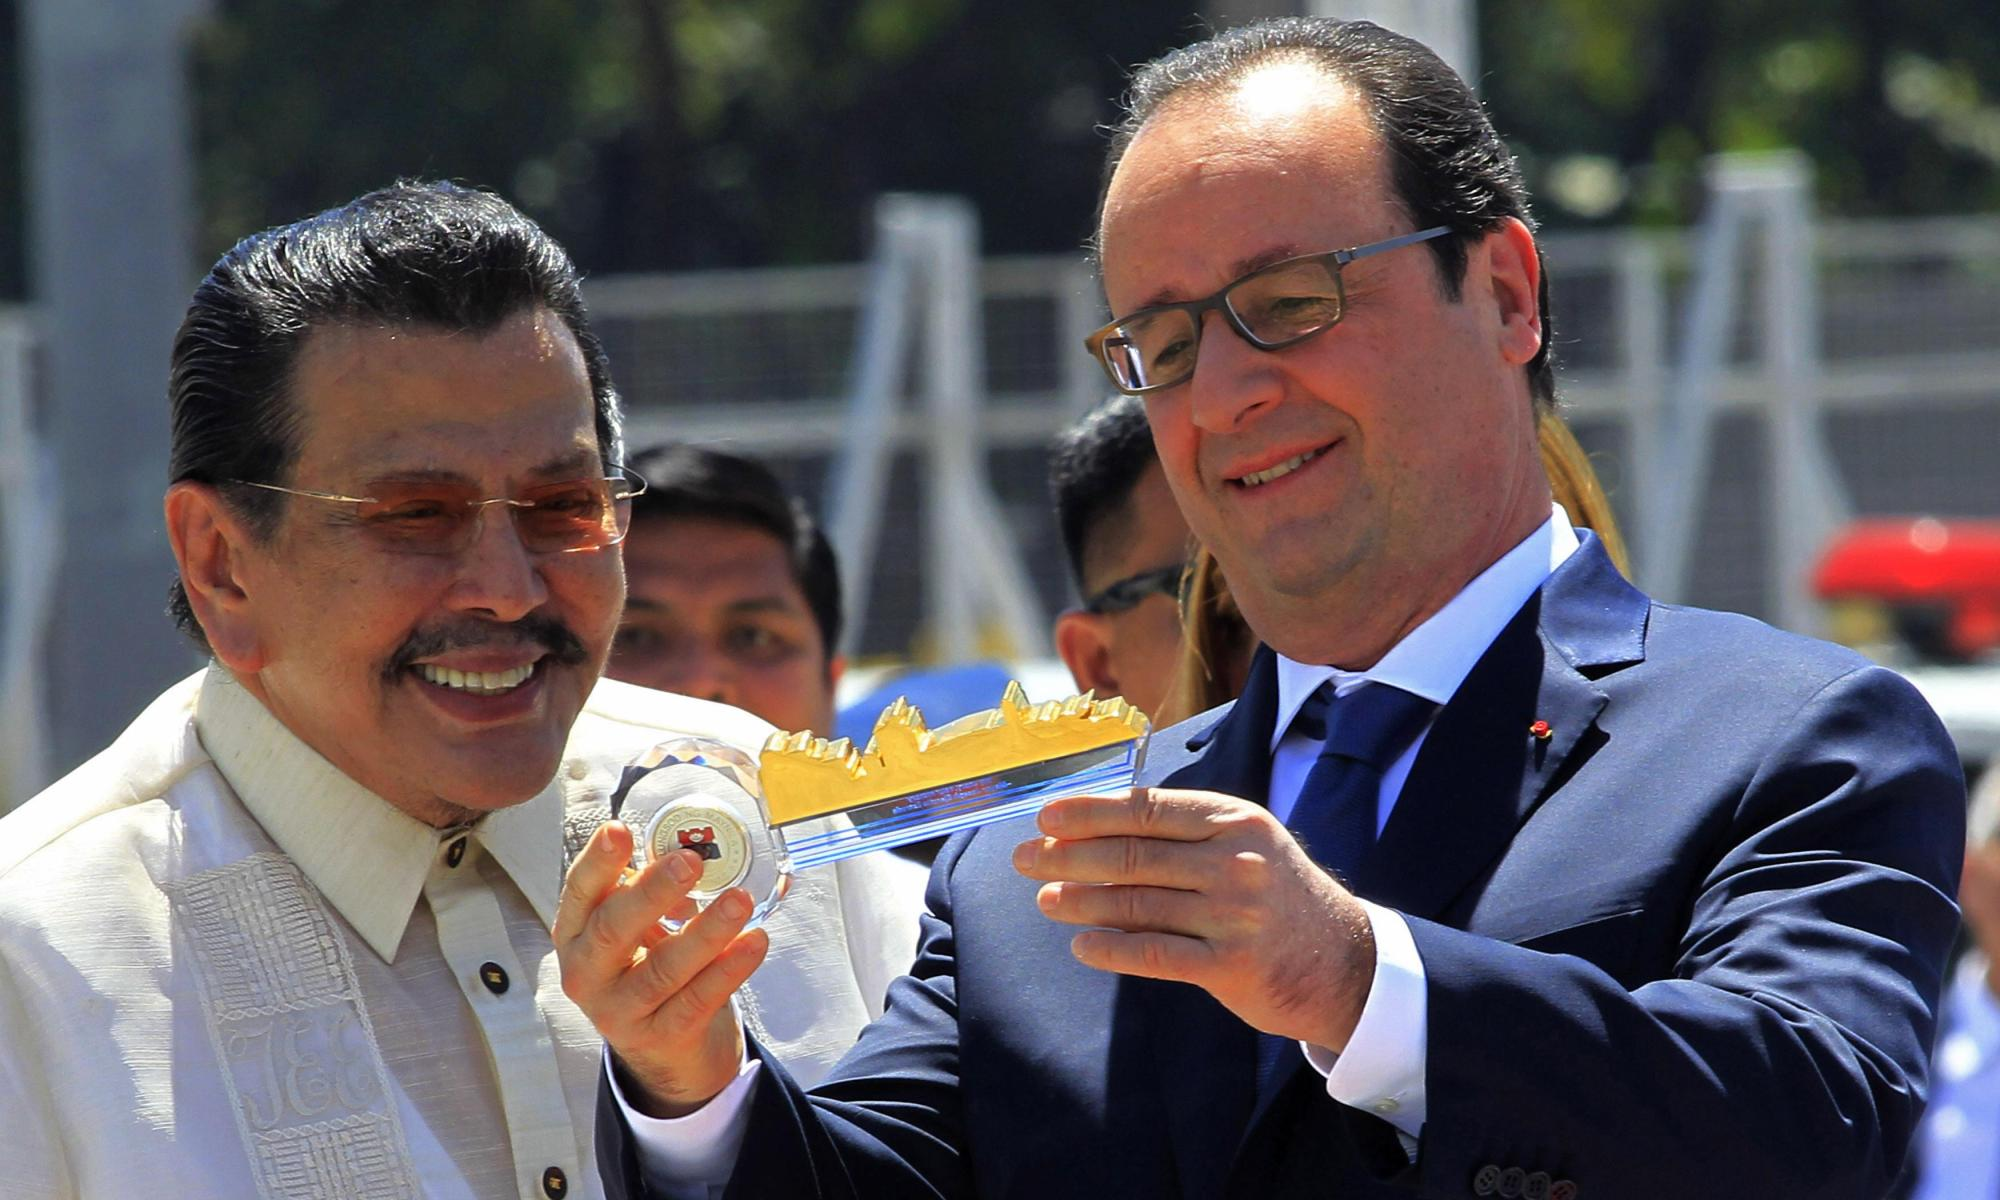 François Hollande in Philippines for climate change push | Environment | The Guardian